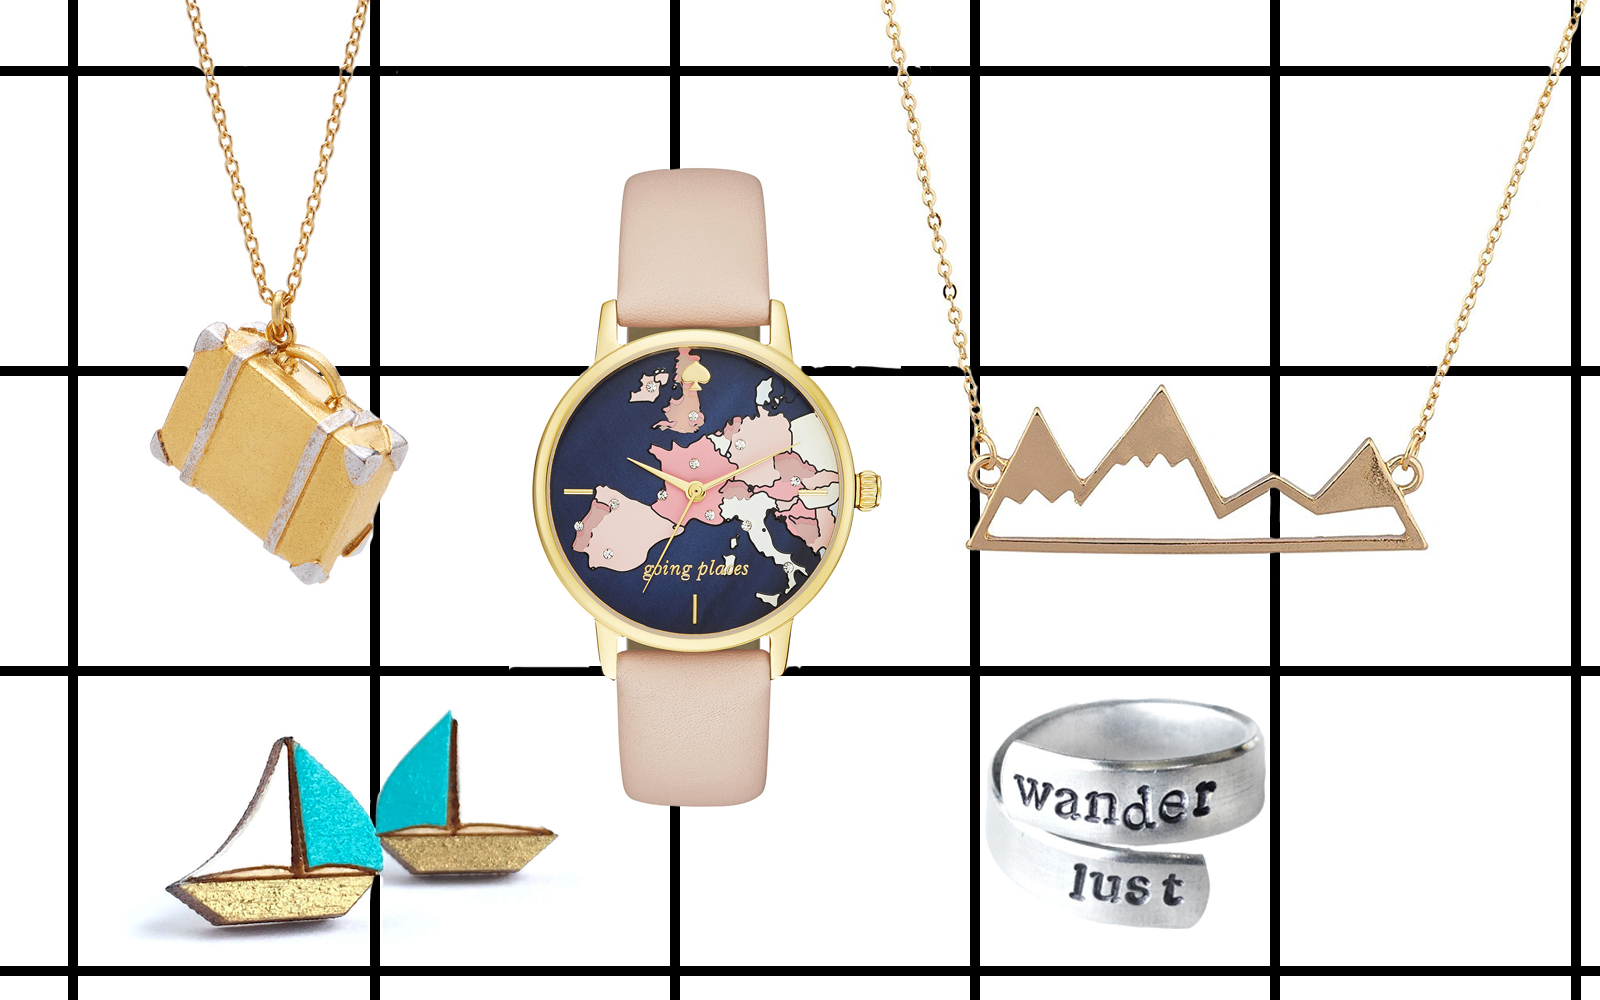 Cute Travel-inspired Jewelry Picks from $8